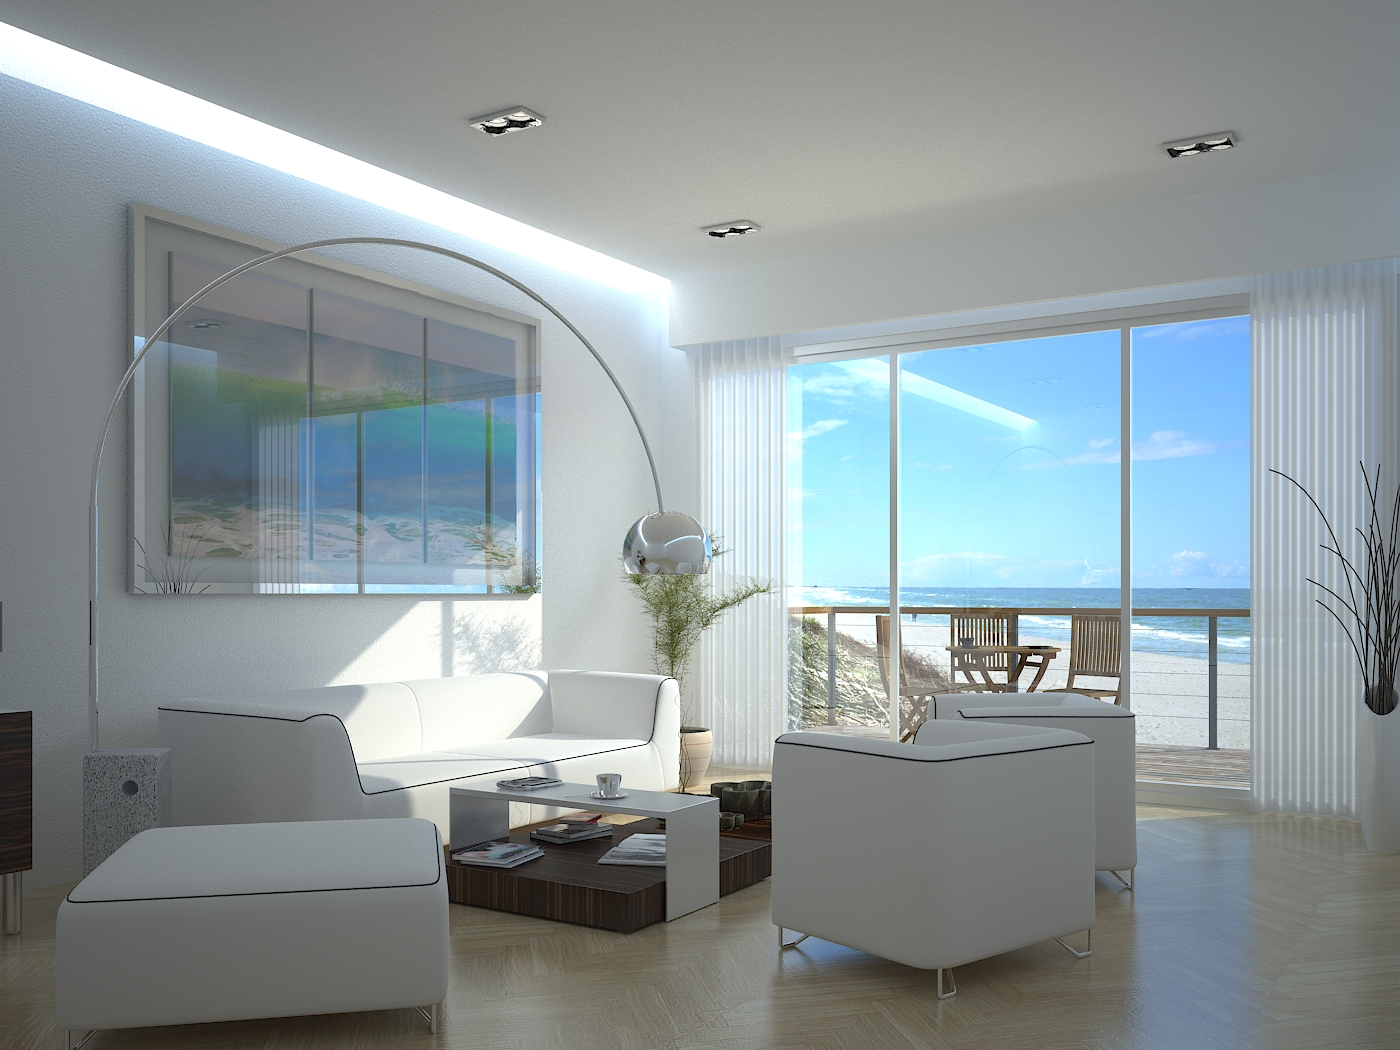 New beach house interior by outboxdesign on deviantart Interior beach house designs